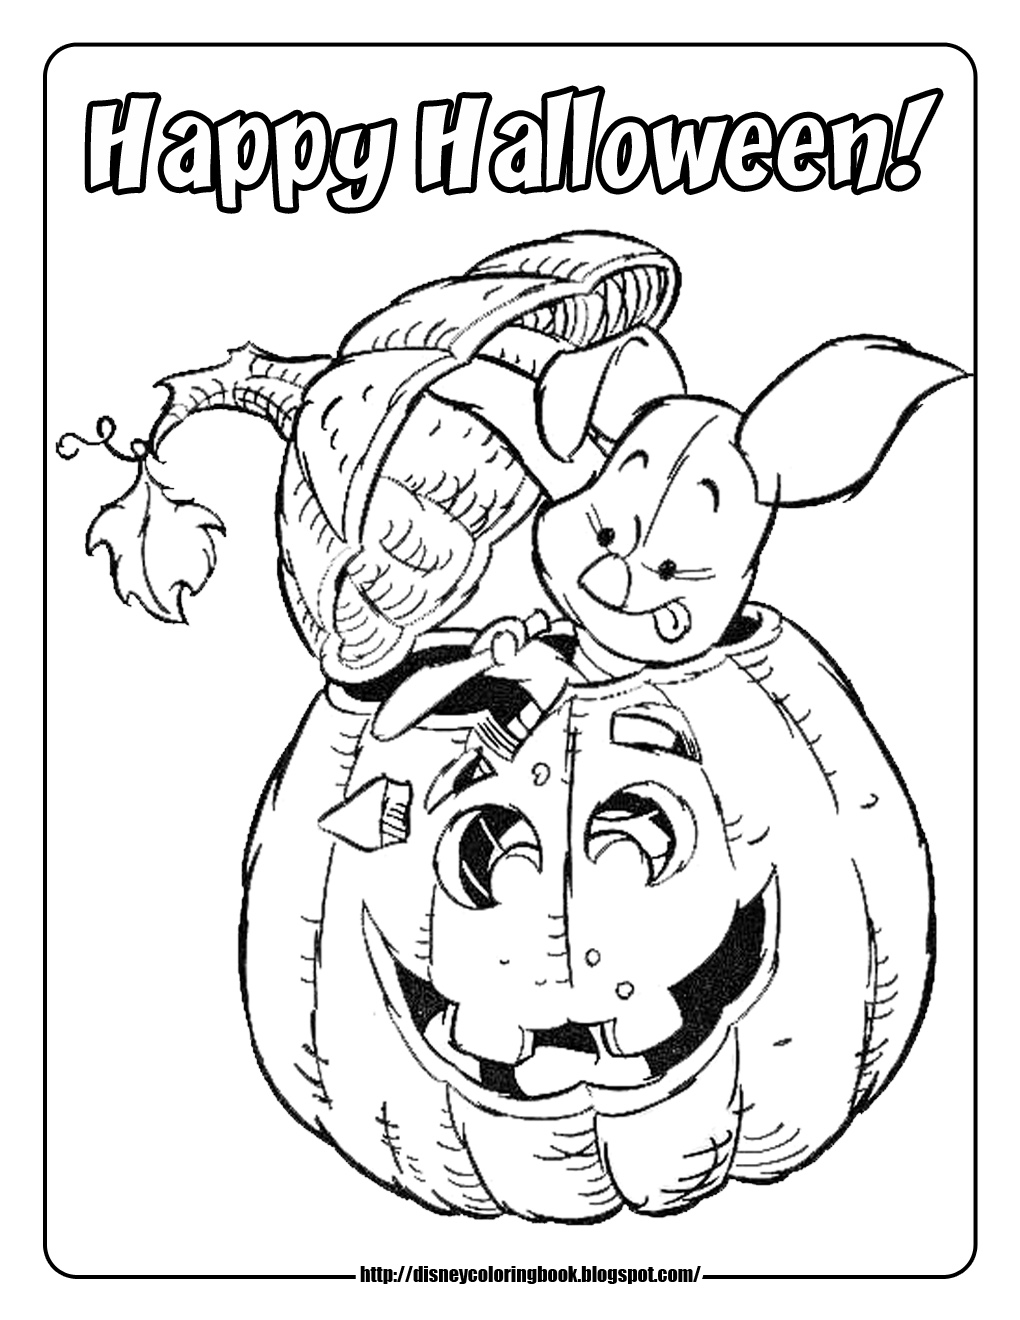 Challenger image with printable coloring pages halloween